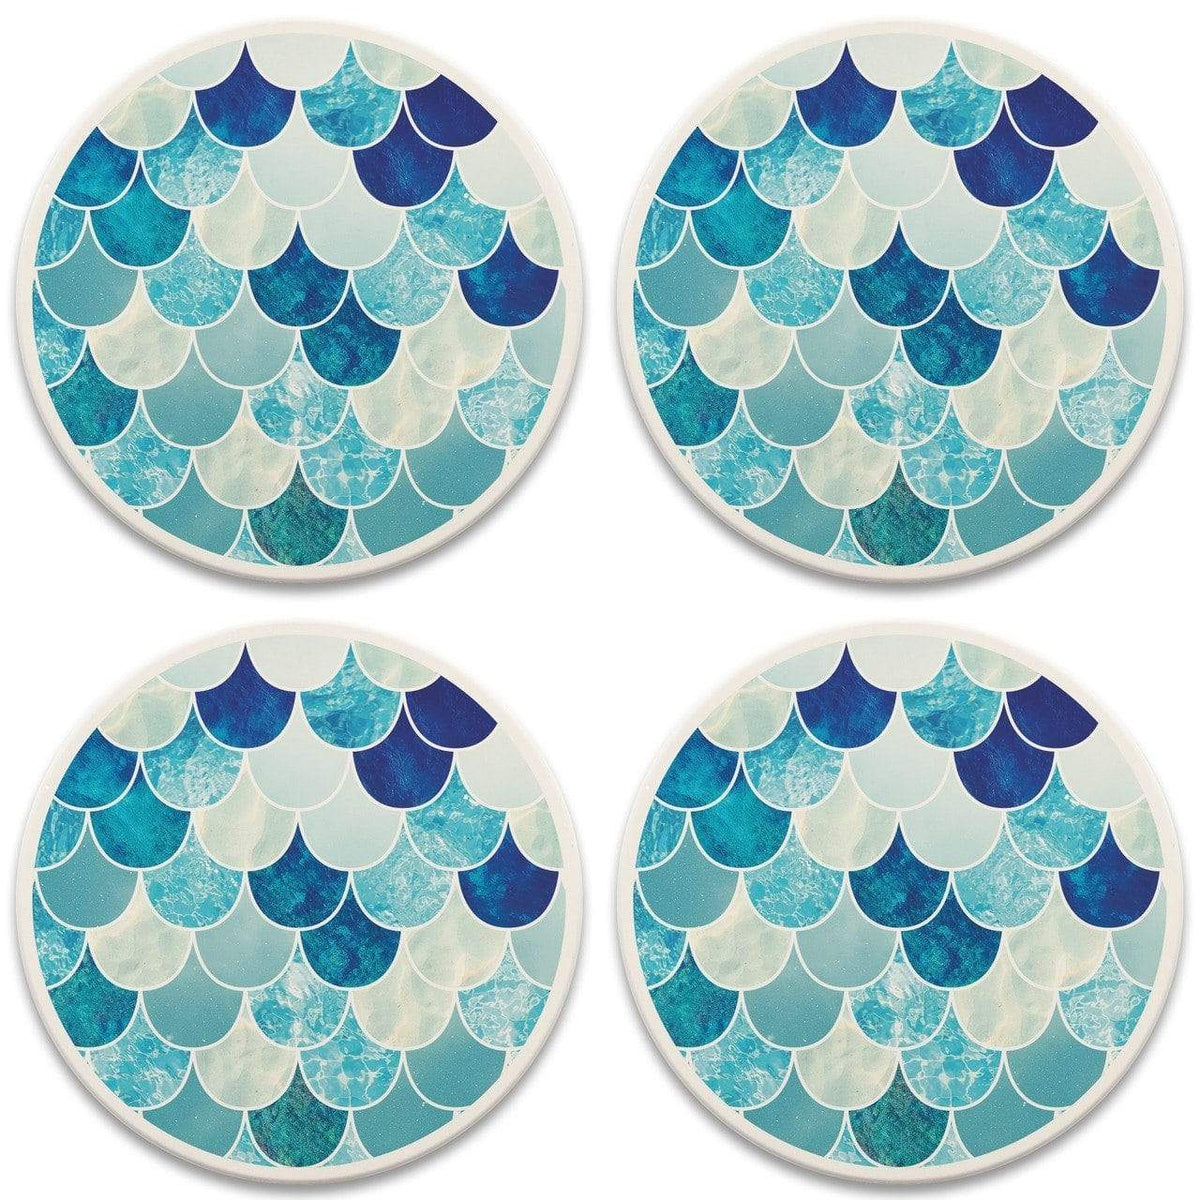 Mermaid Scales Stone Coasters - Set of 4